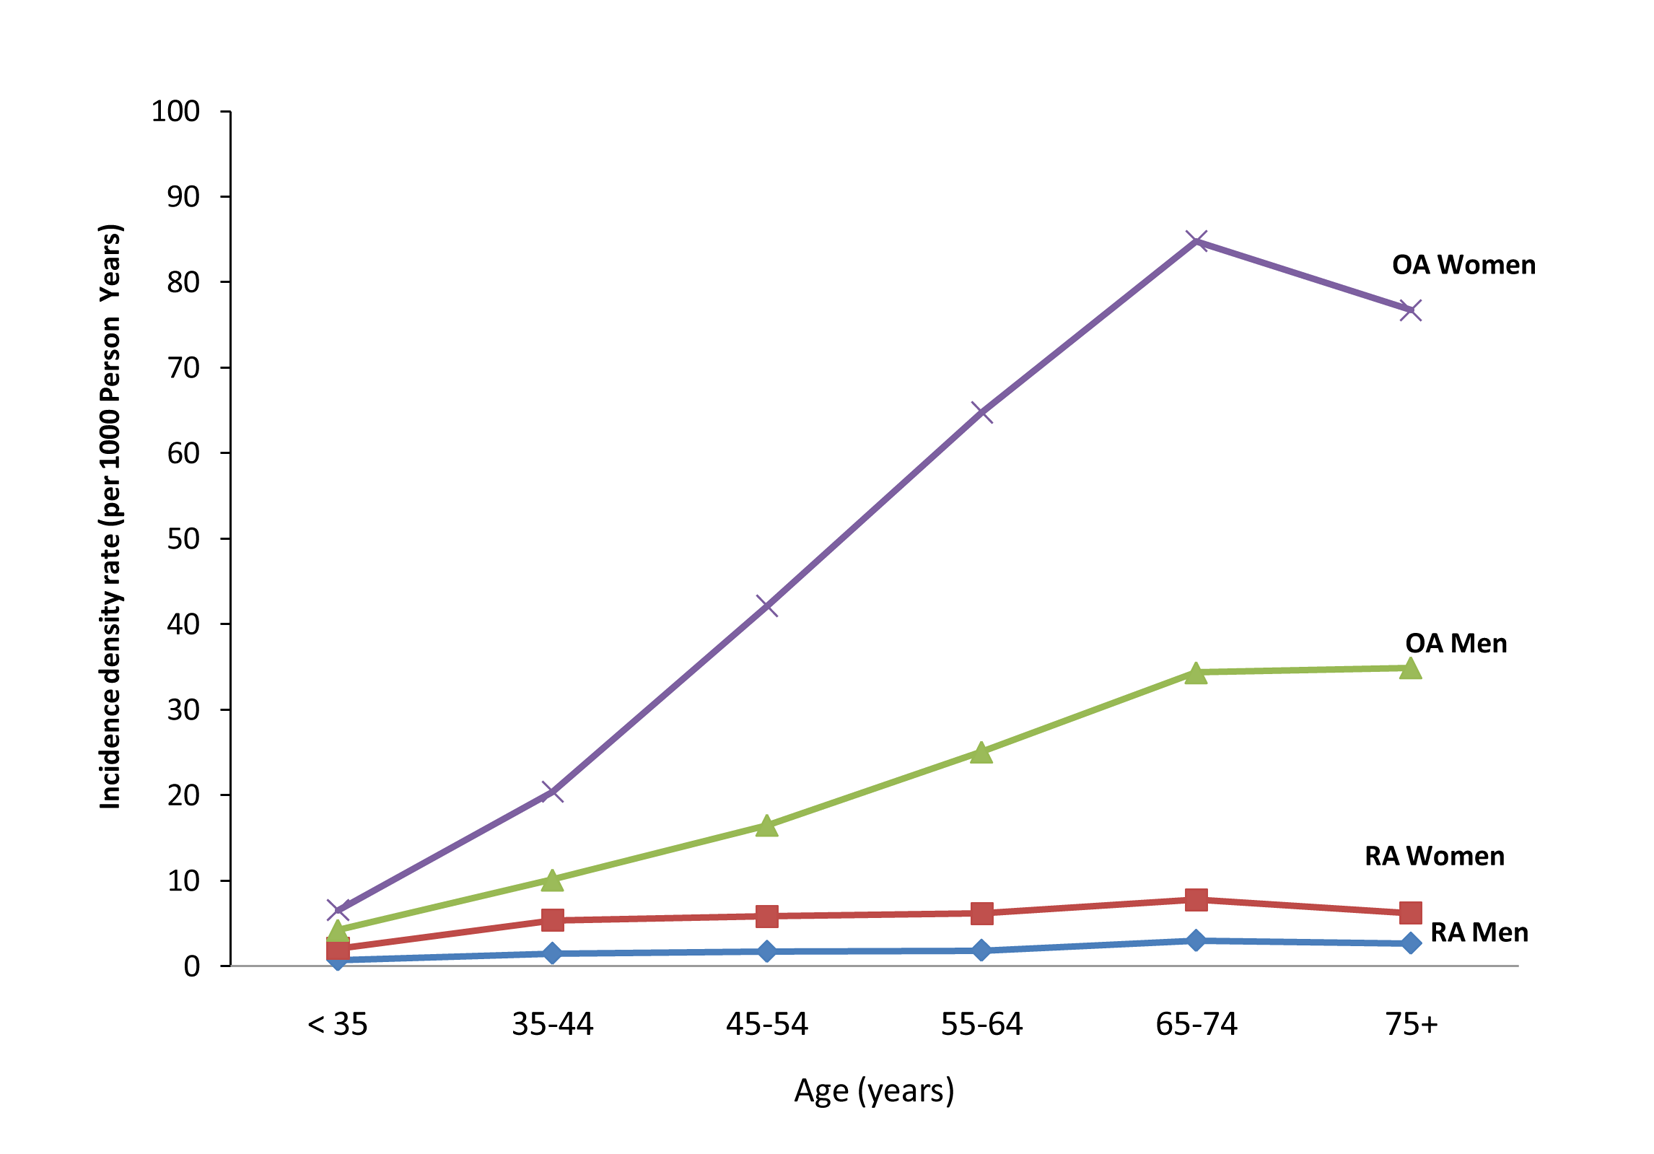 Incidence density rate (per 1,000 person-years) of RA and OA in study cohort, by age and sex, 1998–2006.